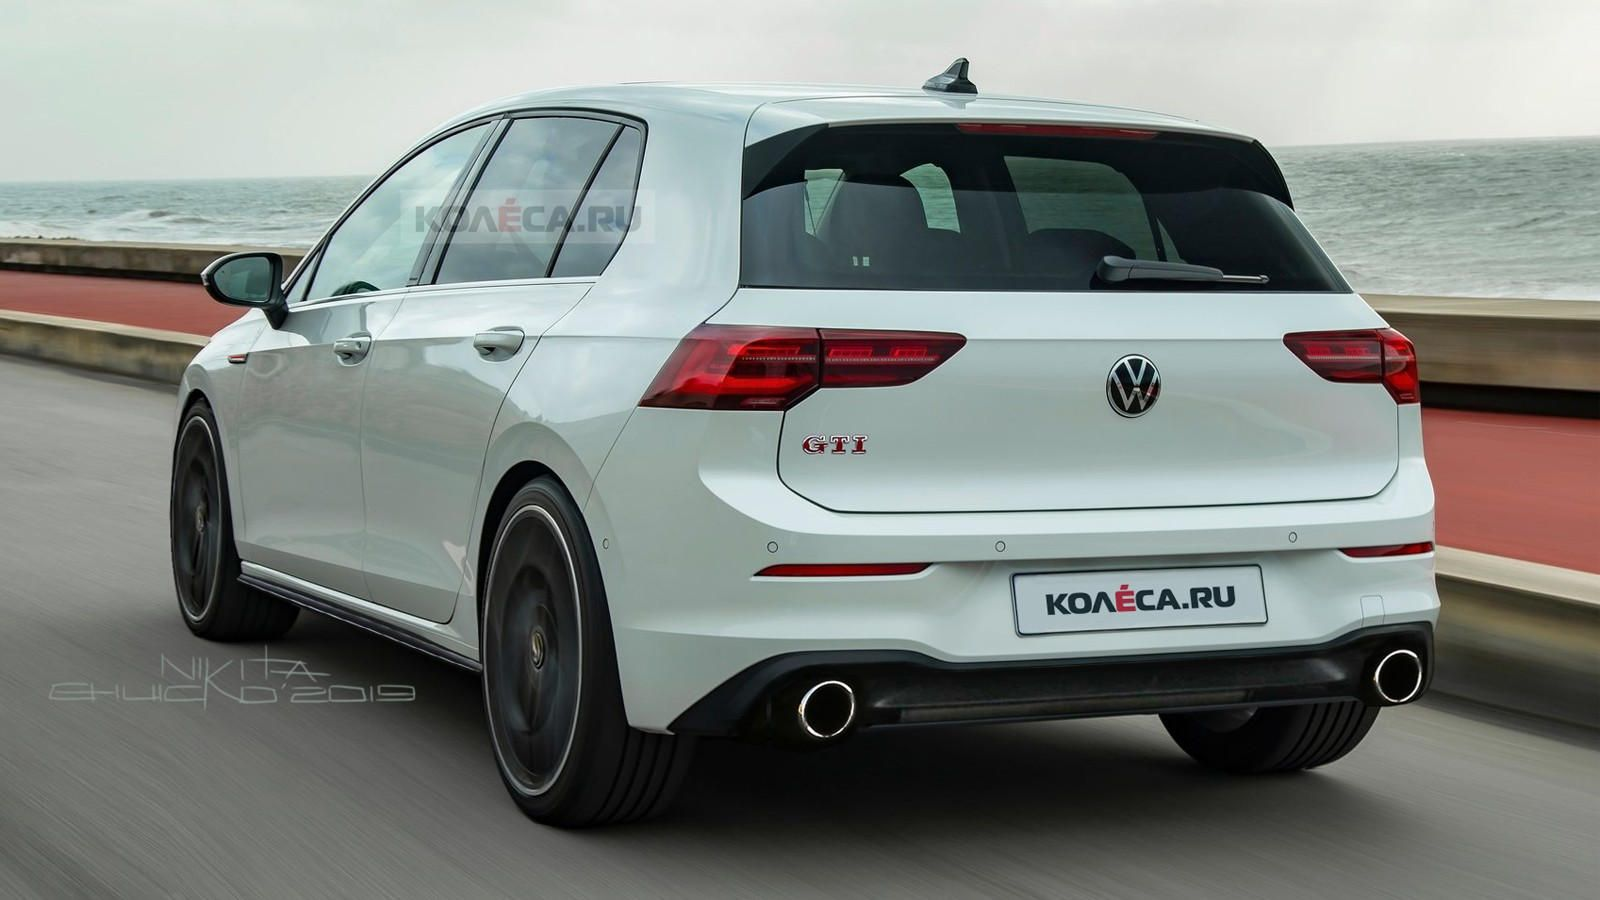 Get Ready For The Next Generation Volkswagen Golf Gti We Now Have A Good Idea What The New Golf Gti Will Look Like Golf Gti Volkswagen Golf Gti Volkswagen